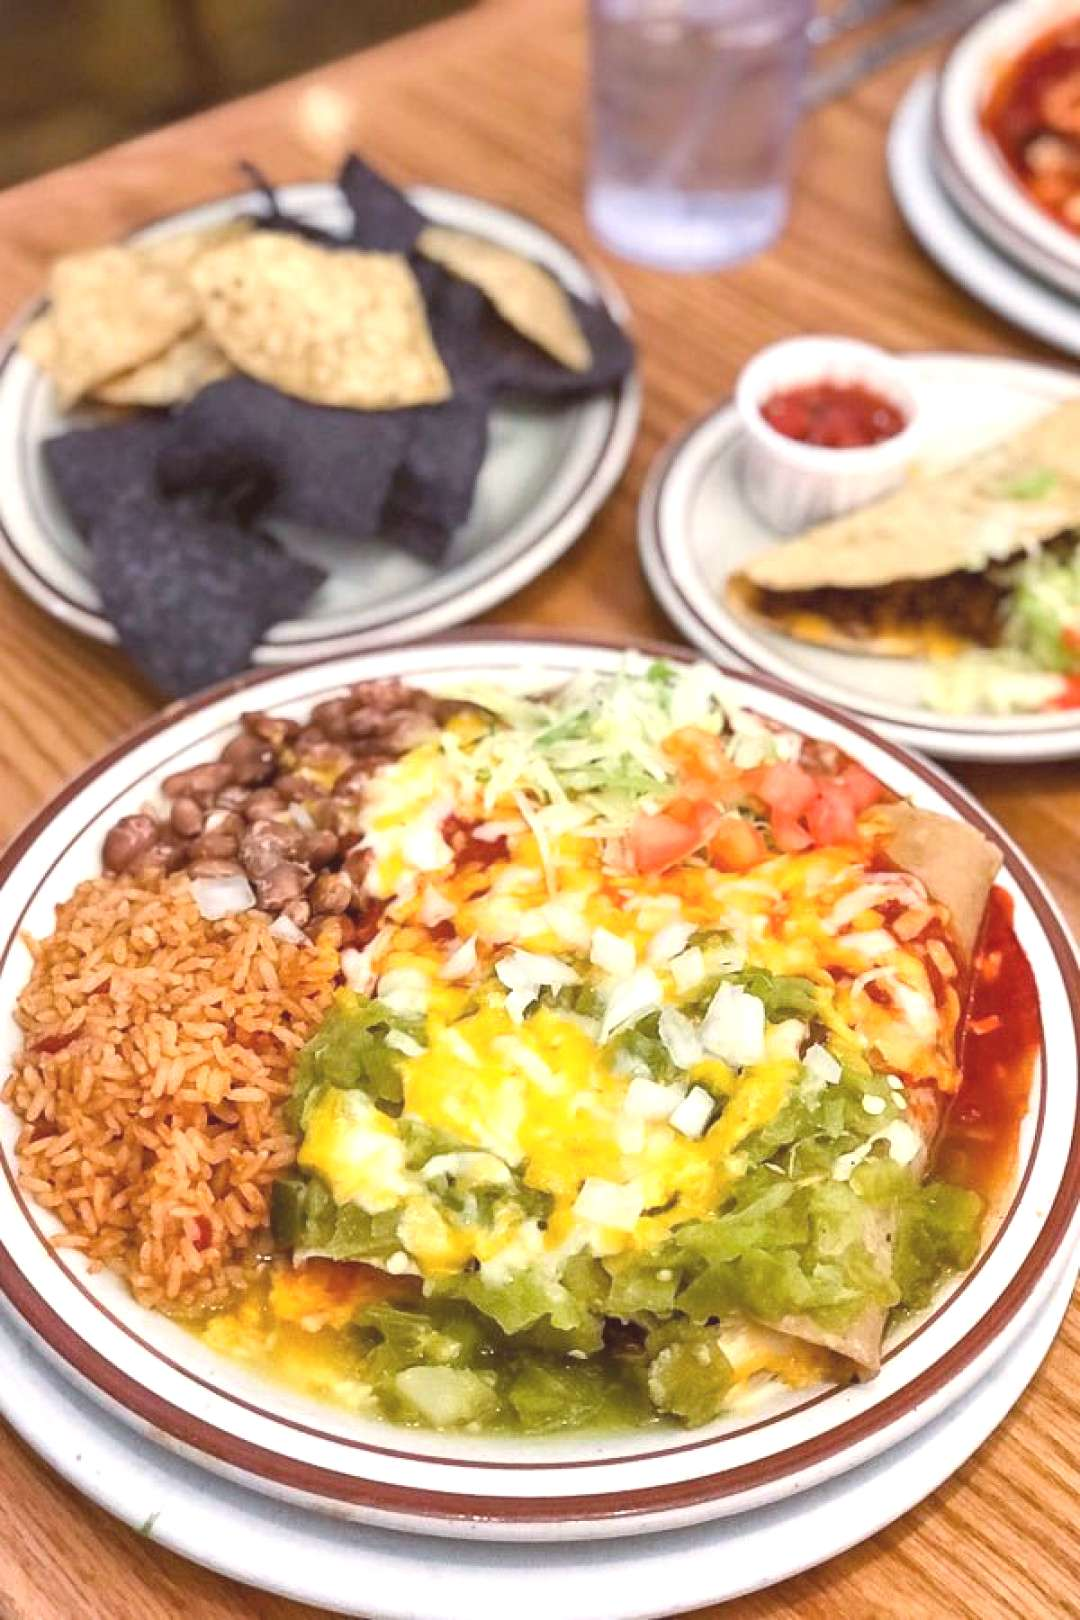 Best Restaurants in Santa Fe NM Where the Locals Eat! A great tested list of fan... - -